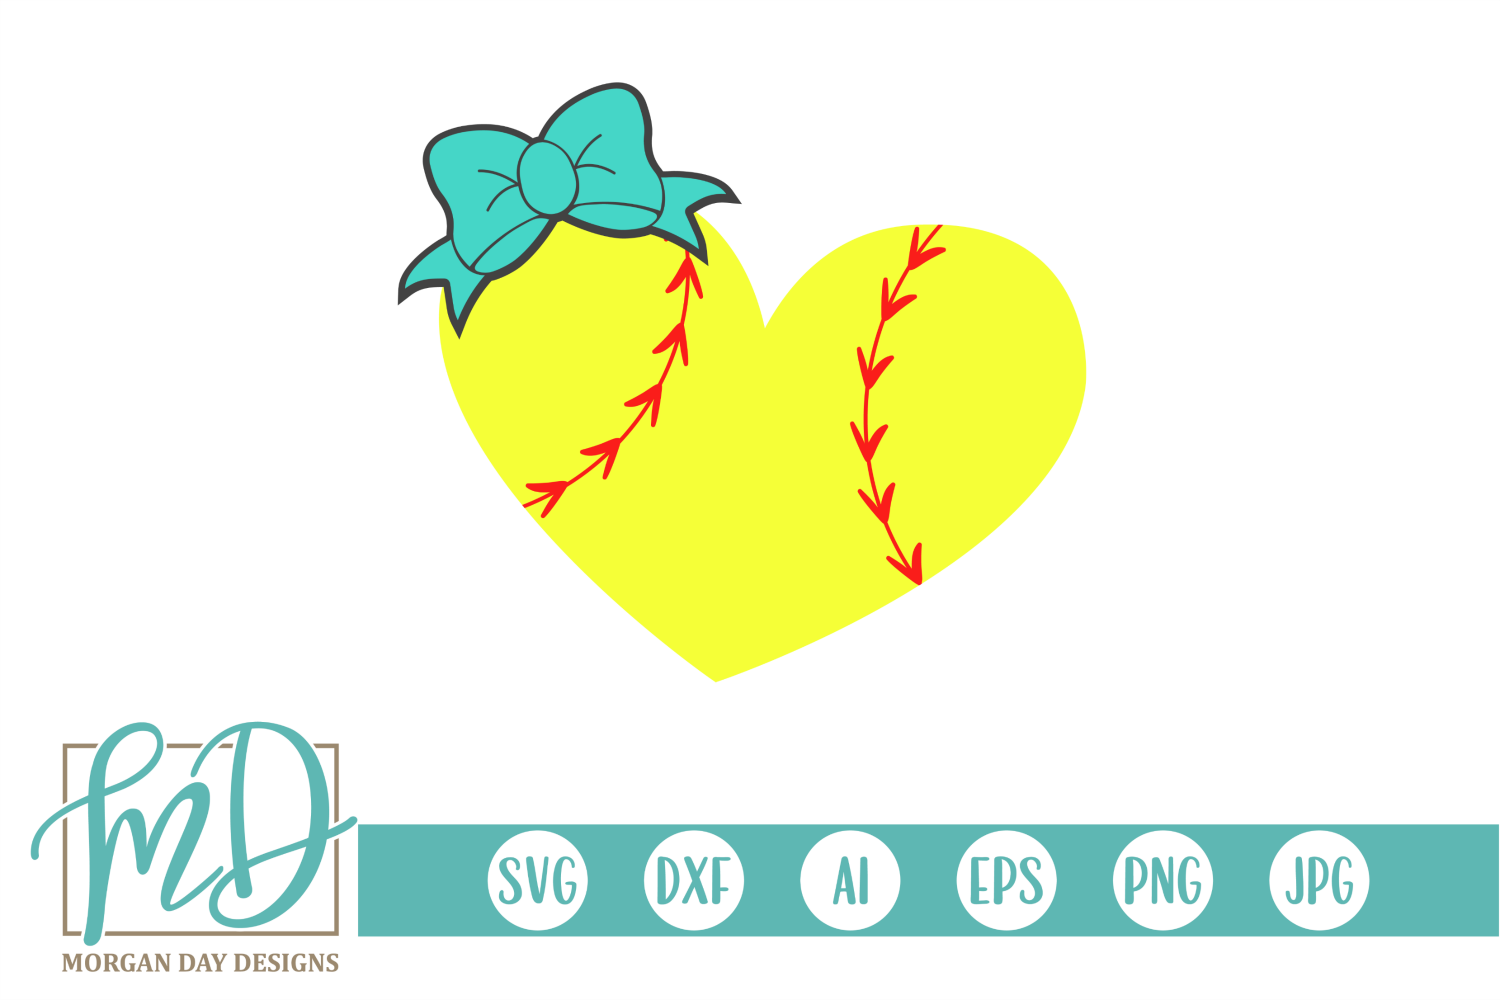 Softball Heart with Bow SVG, DXF, AI, EPS, PNG, JPEG example image 1